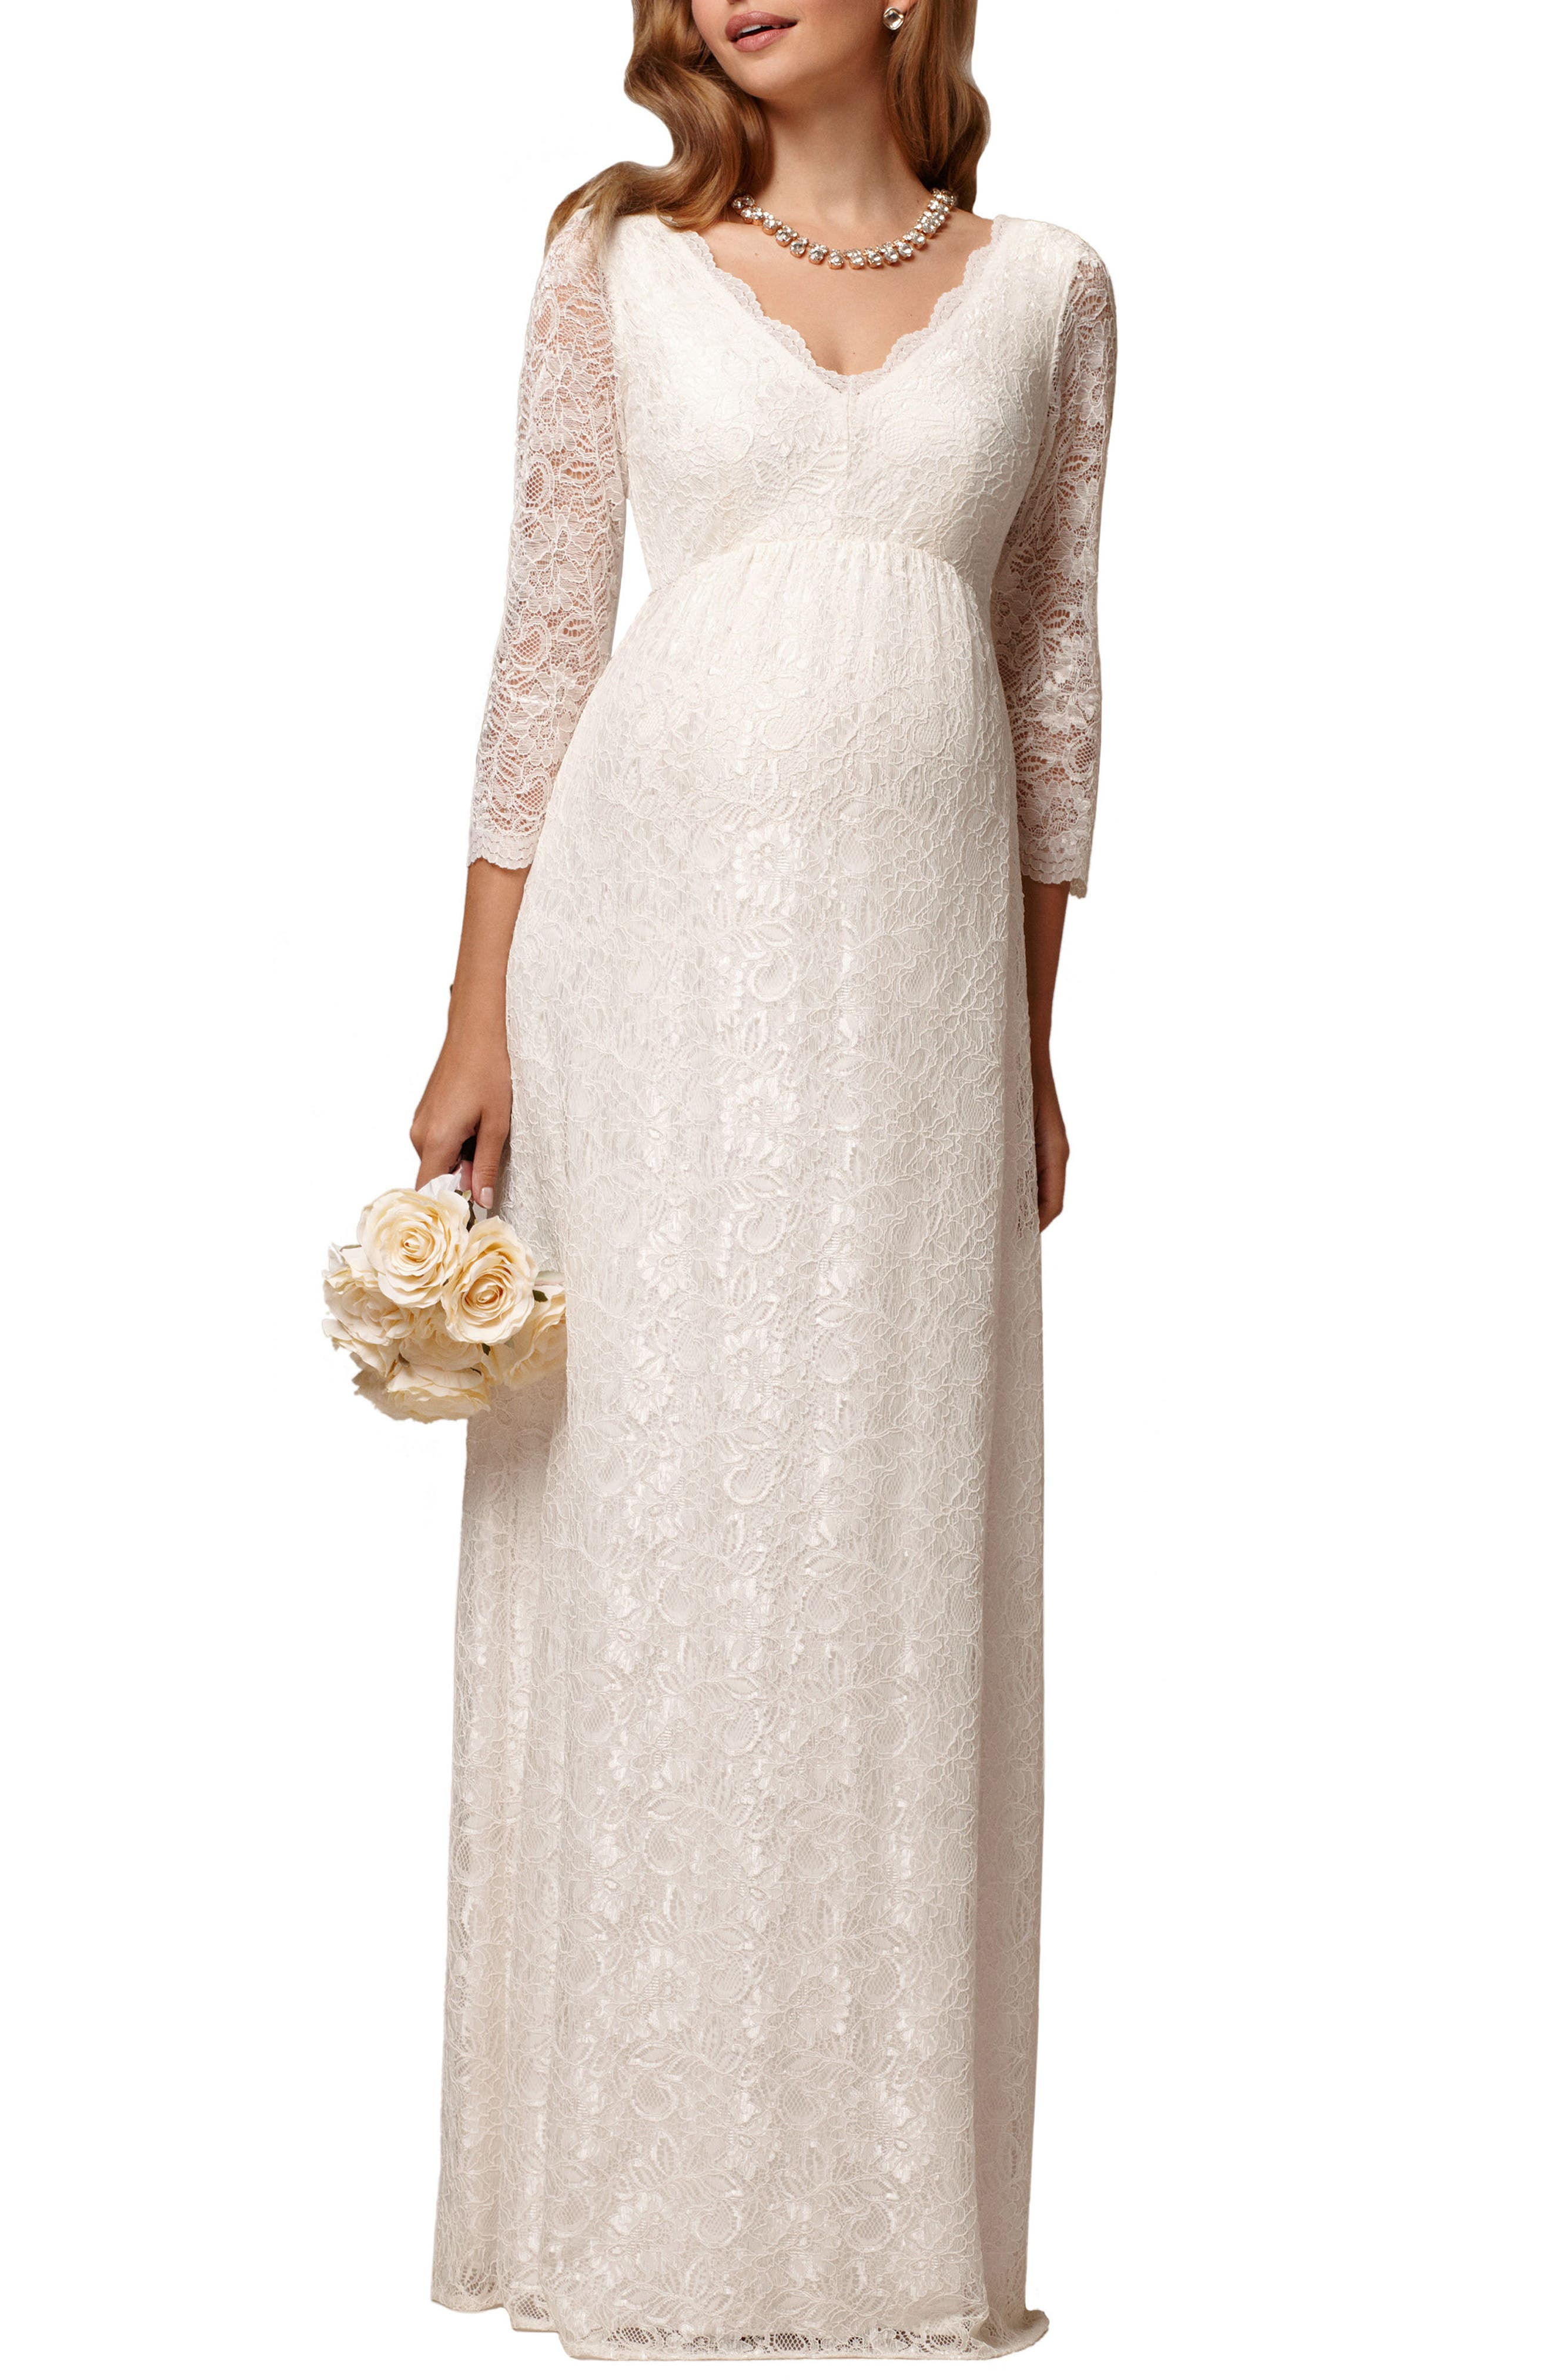 Chloe Lace Maternity Gown,                             Main thumbnail 1, color,                             Ivory